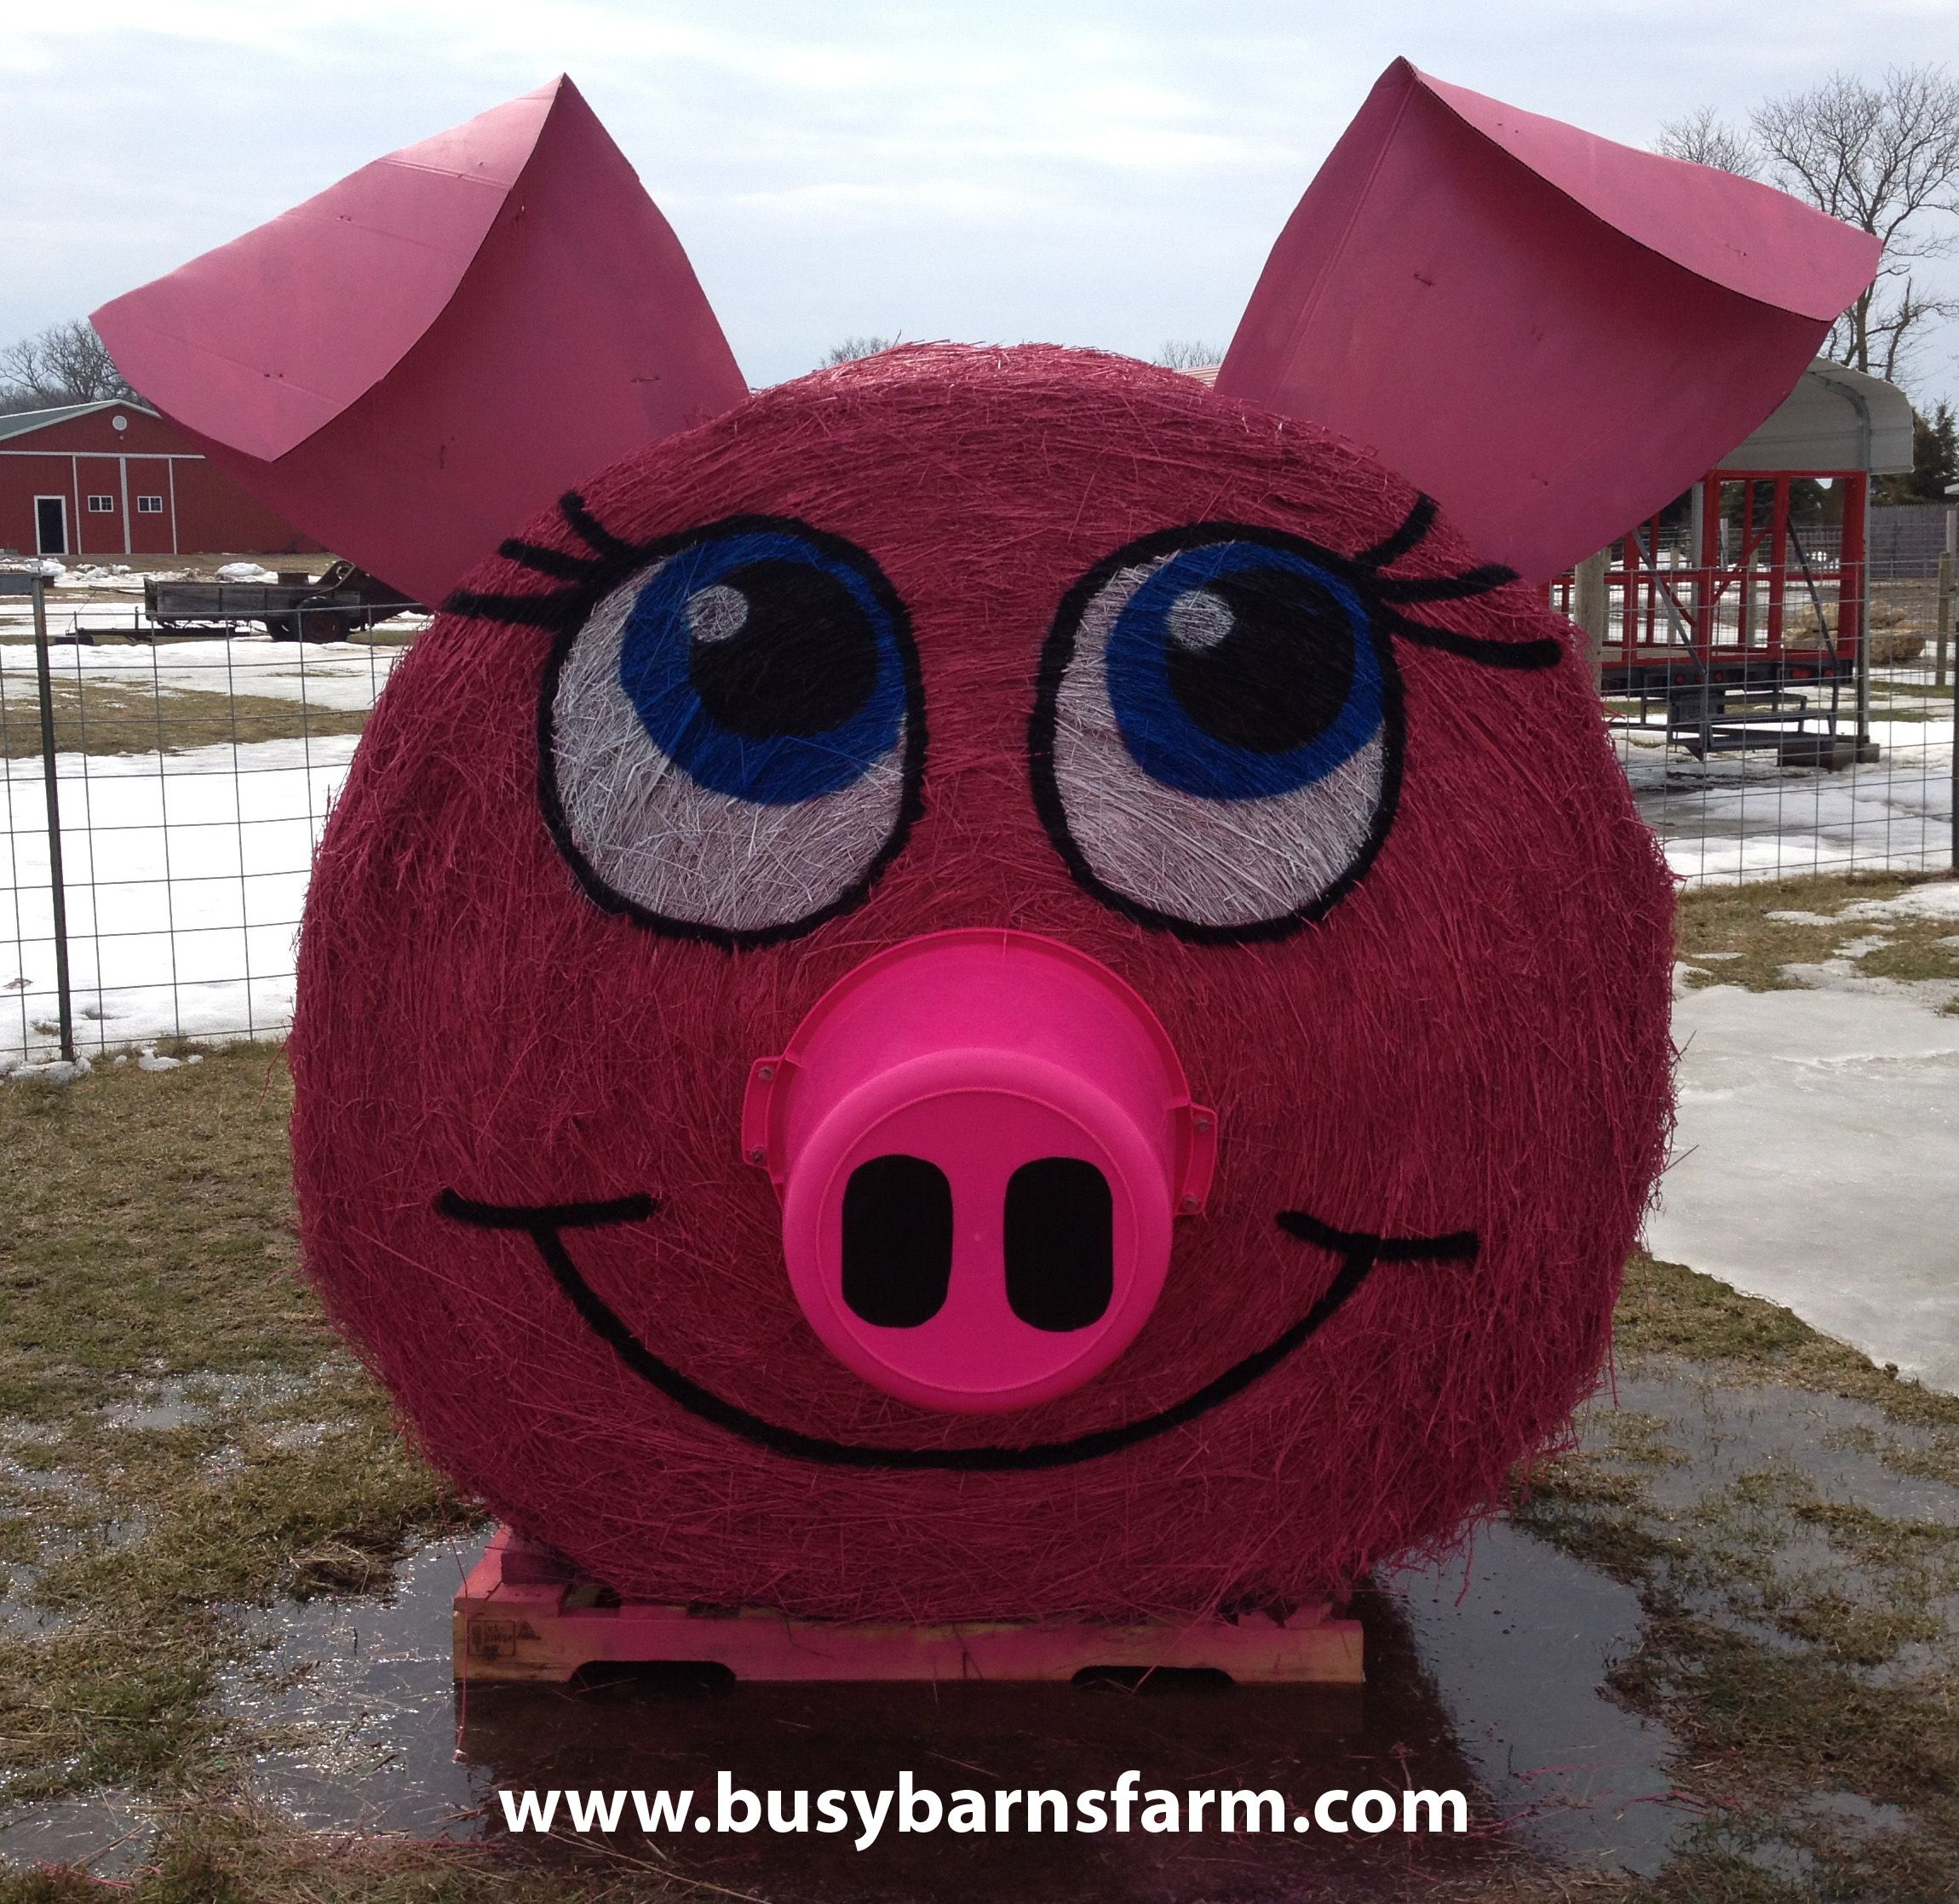 Busy Barns Farm Pink Pig Round Bale Art